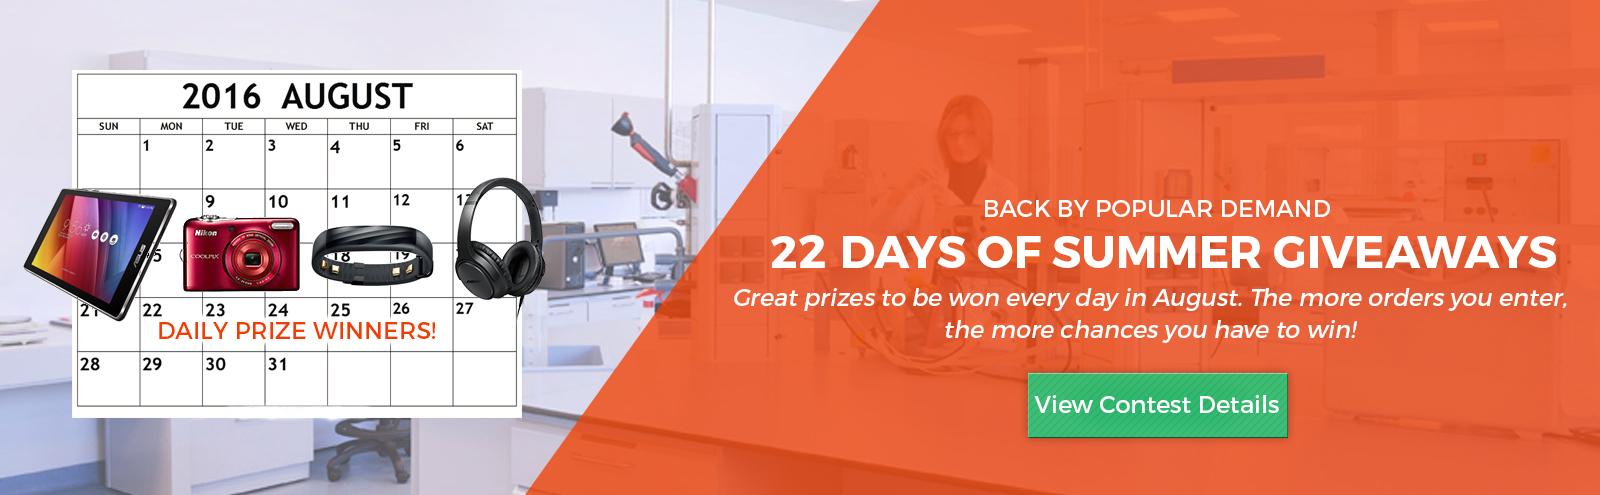 22 Days of Summer Giveaways